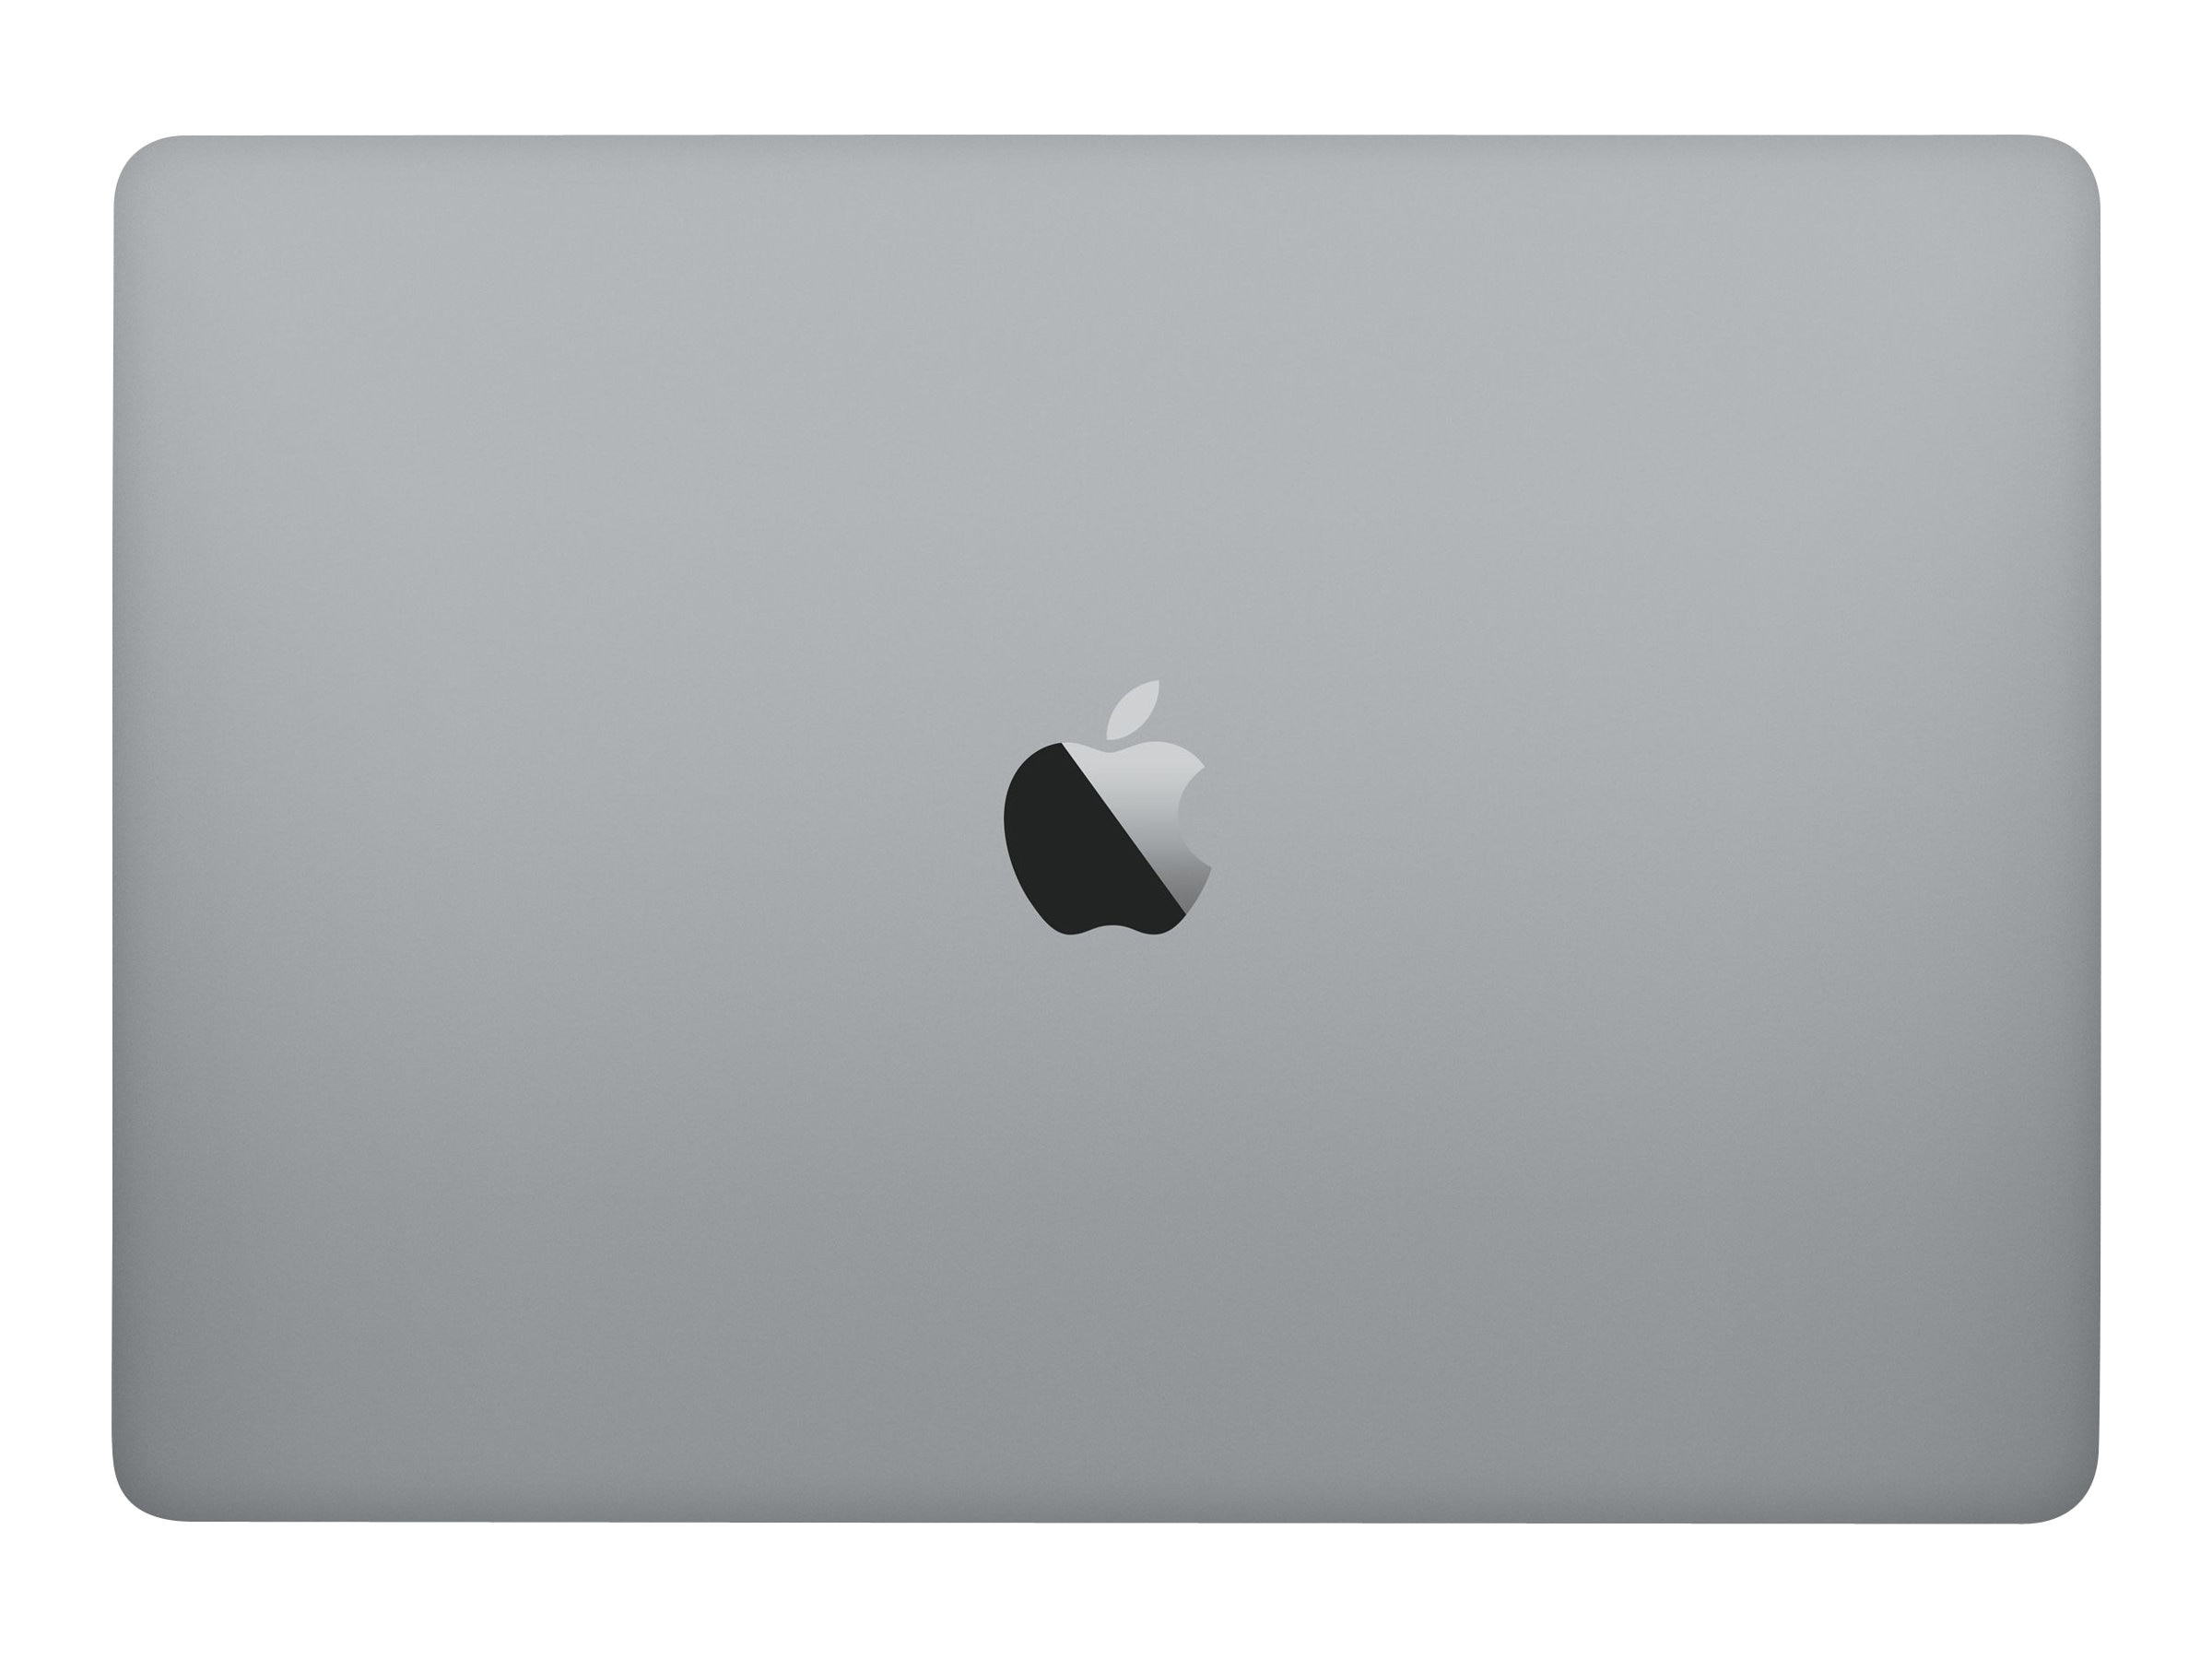 Apple MLH12LL/A Image 4